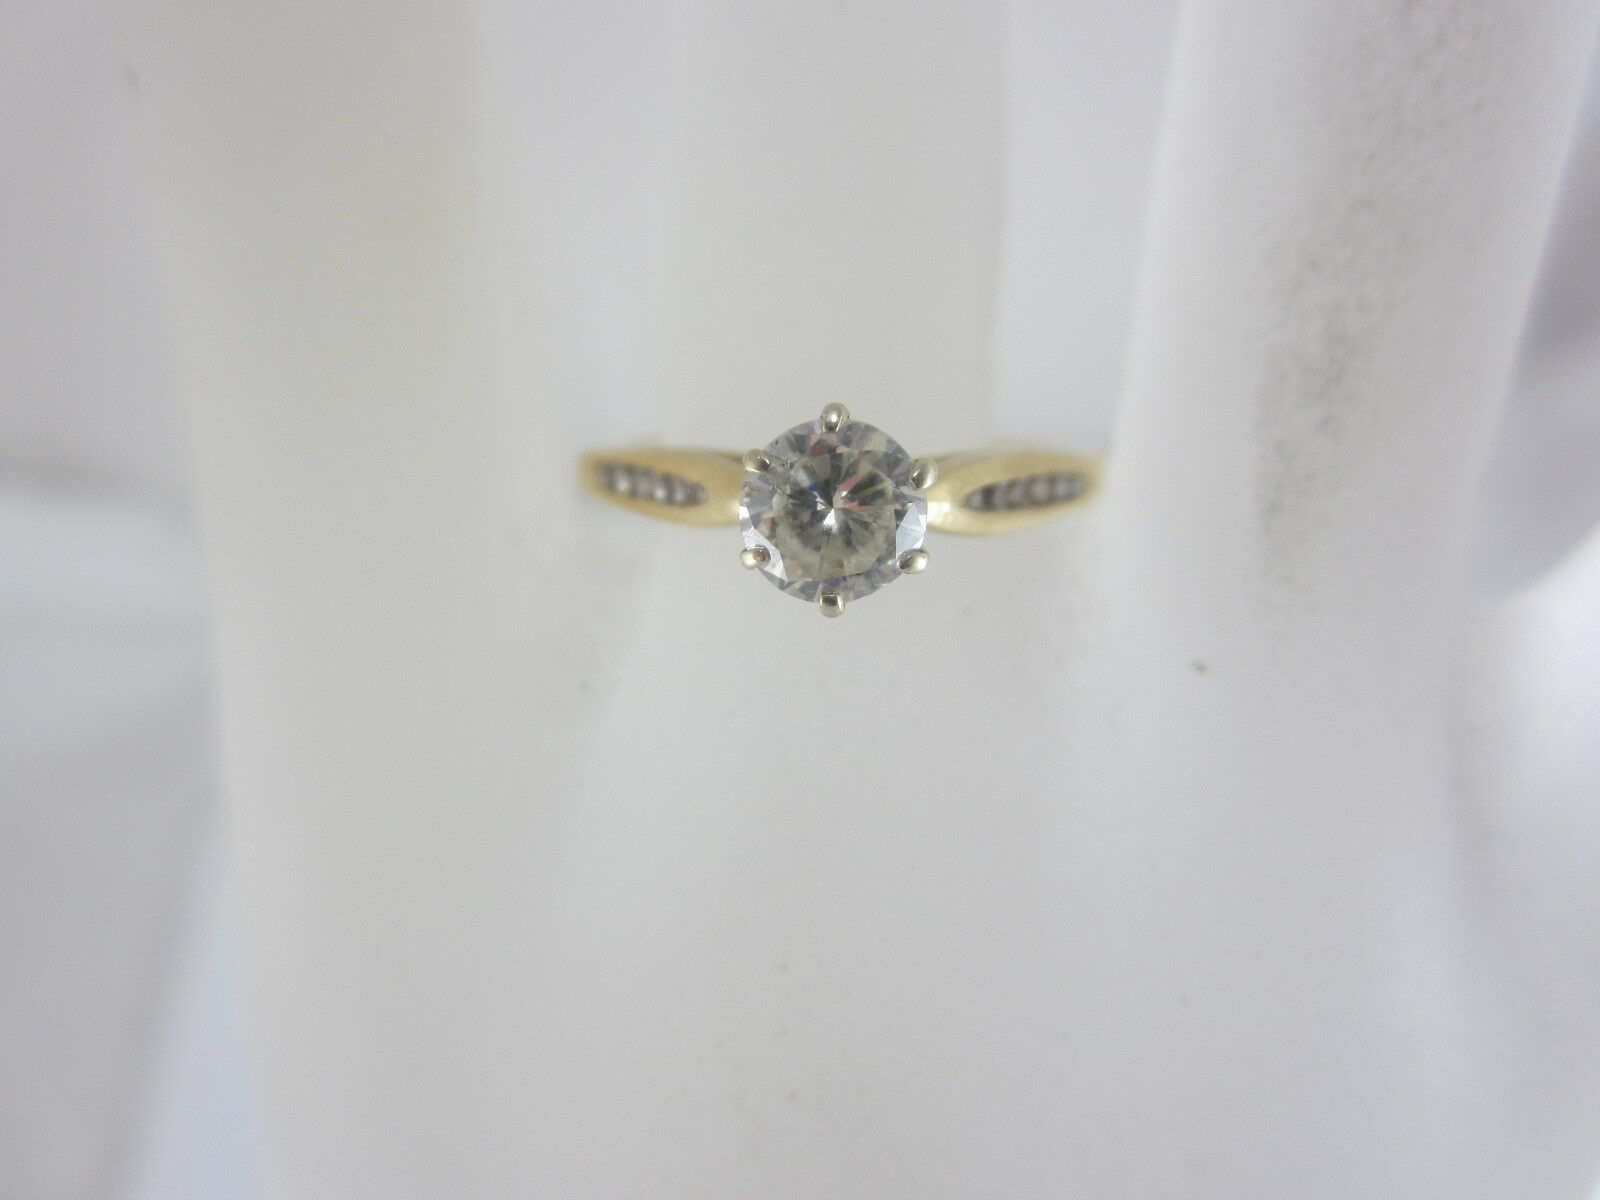 14K YELLOW gold ROUND DIAMOND SOLITAIRE RING WITH ACCENTS 0.56CT SZ 7.5 2.3G